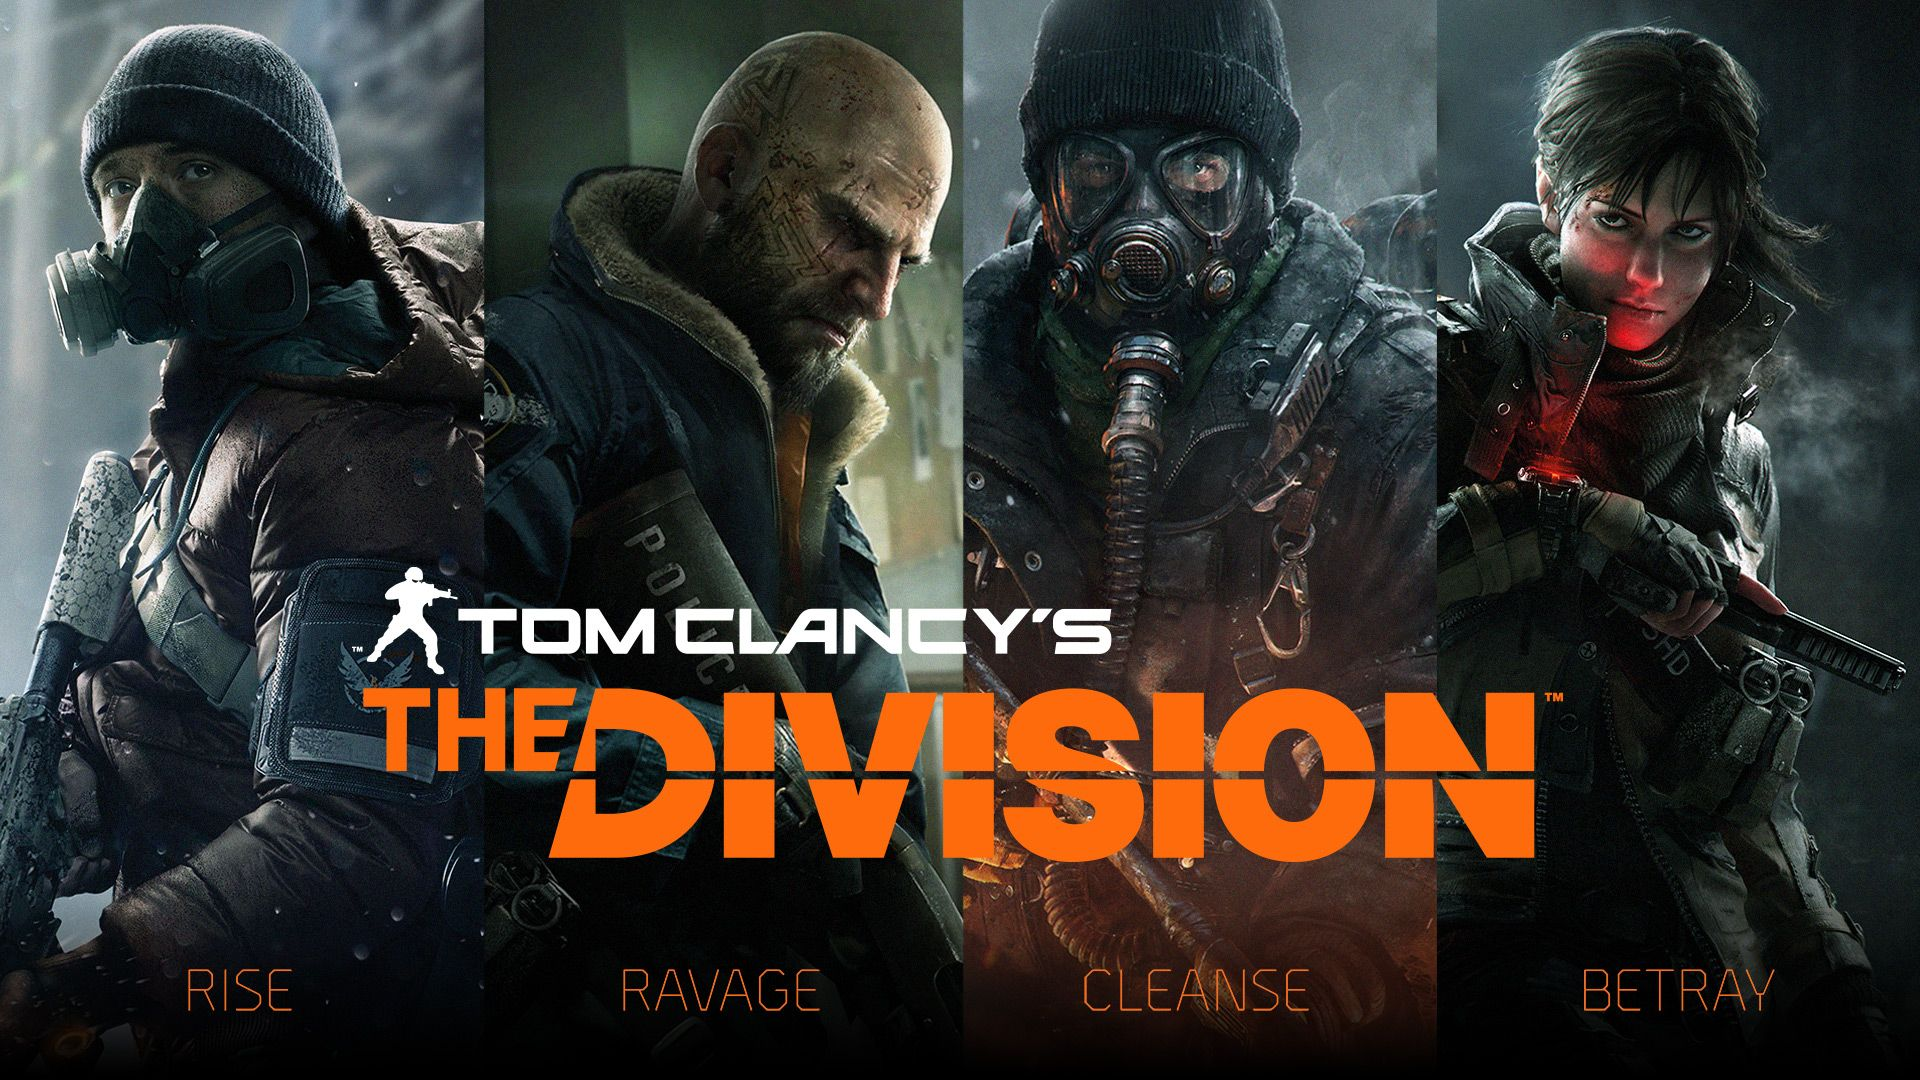 Tom Clancys The Division Poster 1080 X 1920 Hd Backgrounds High